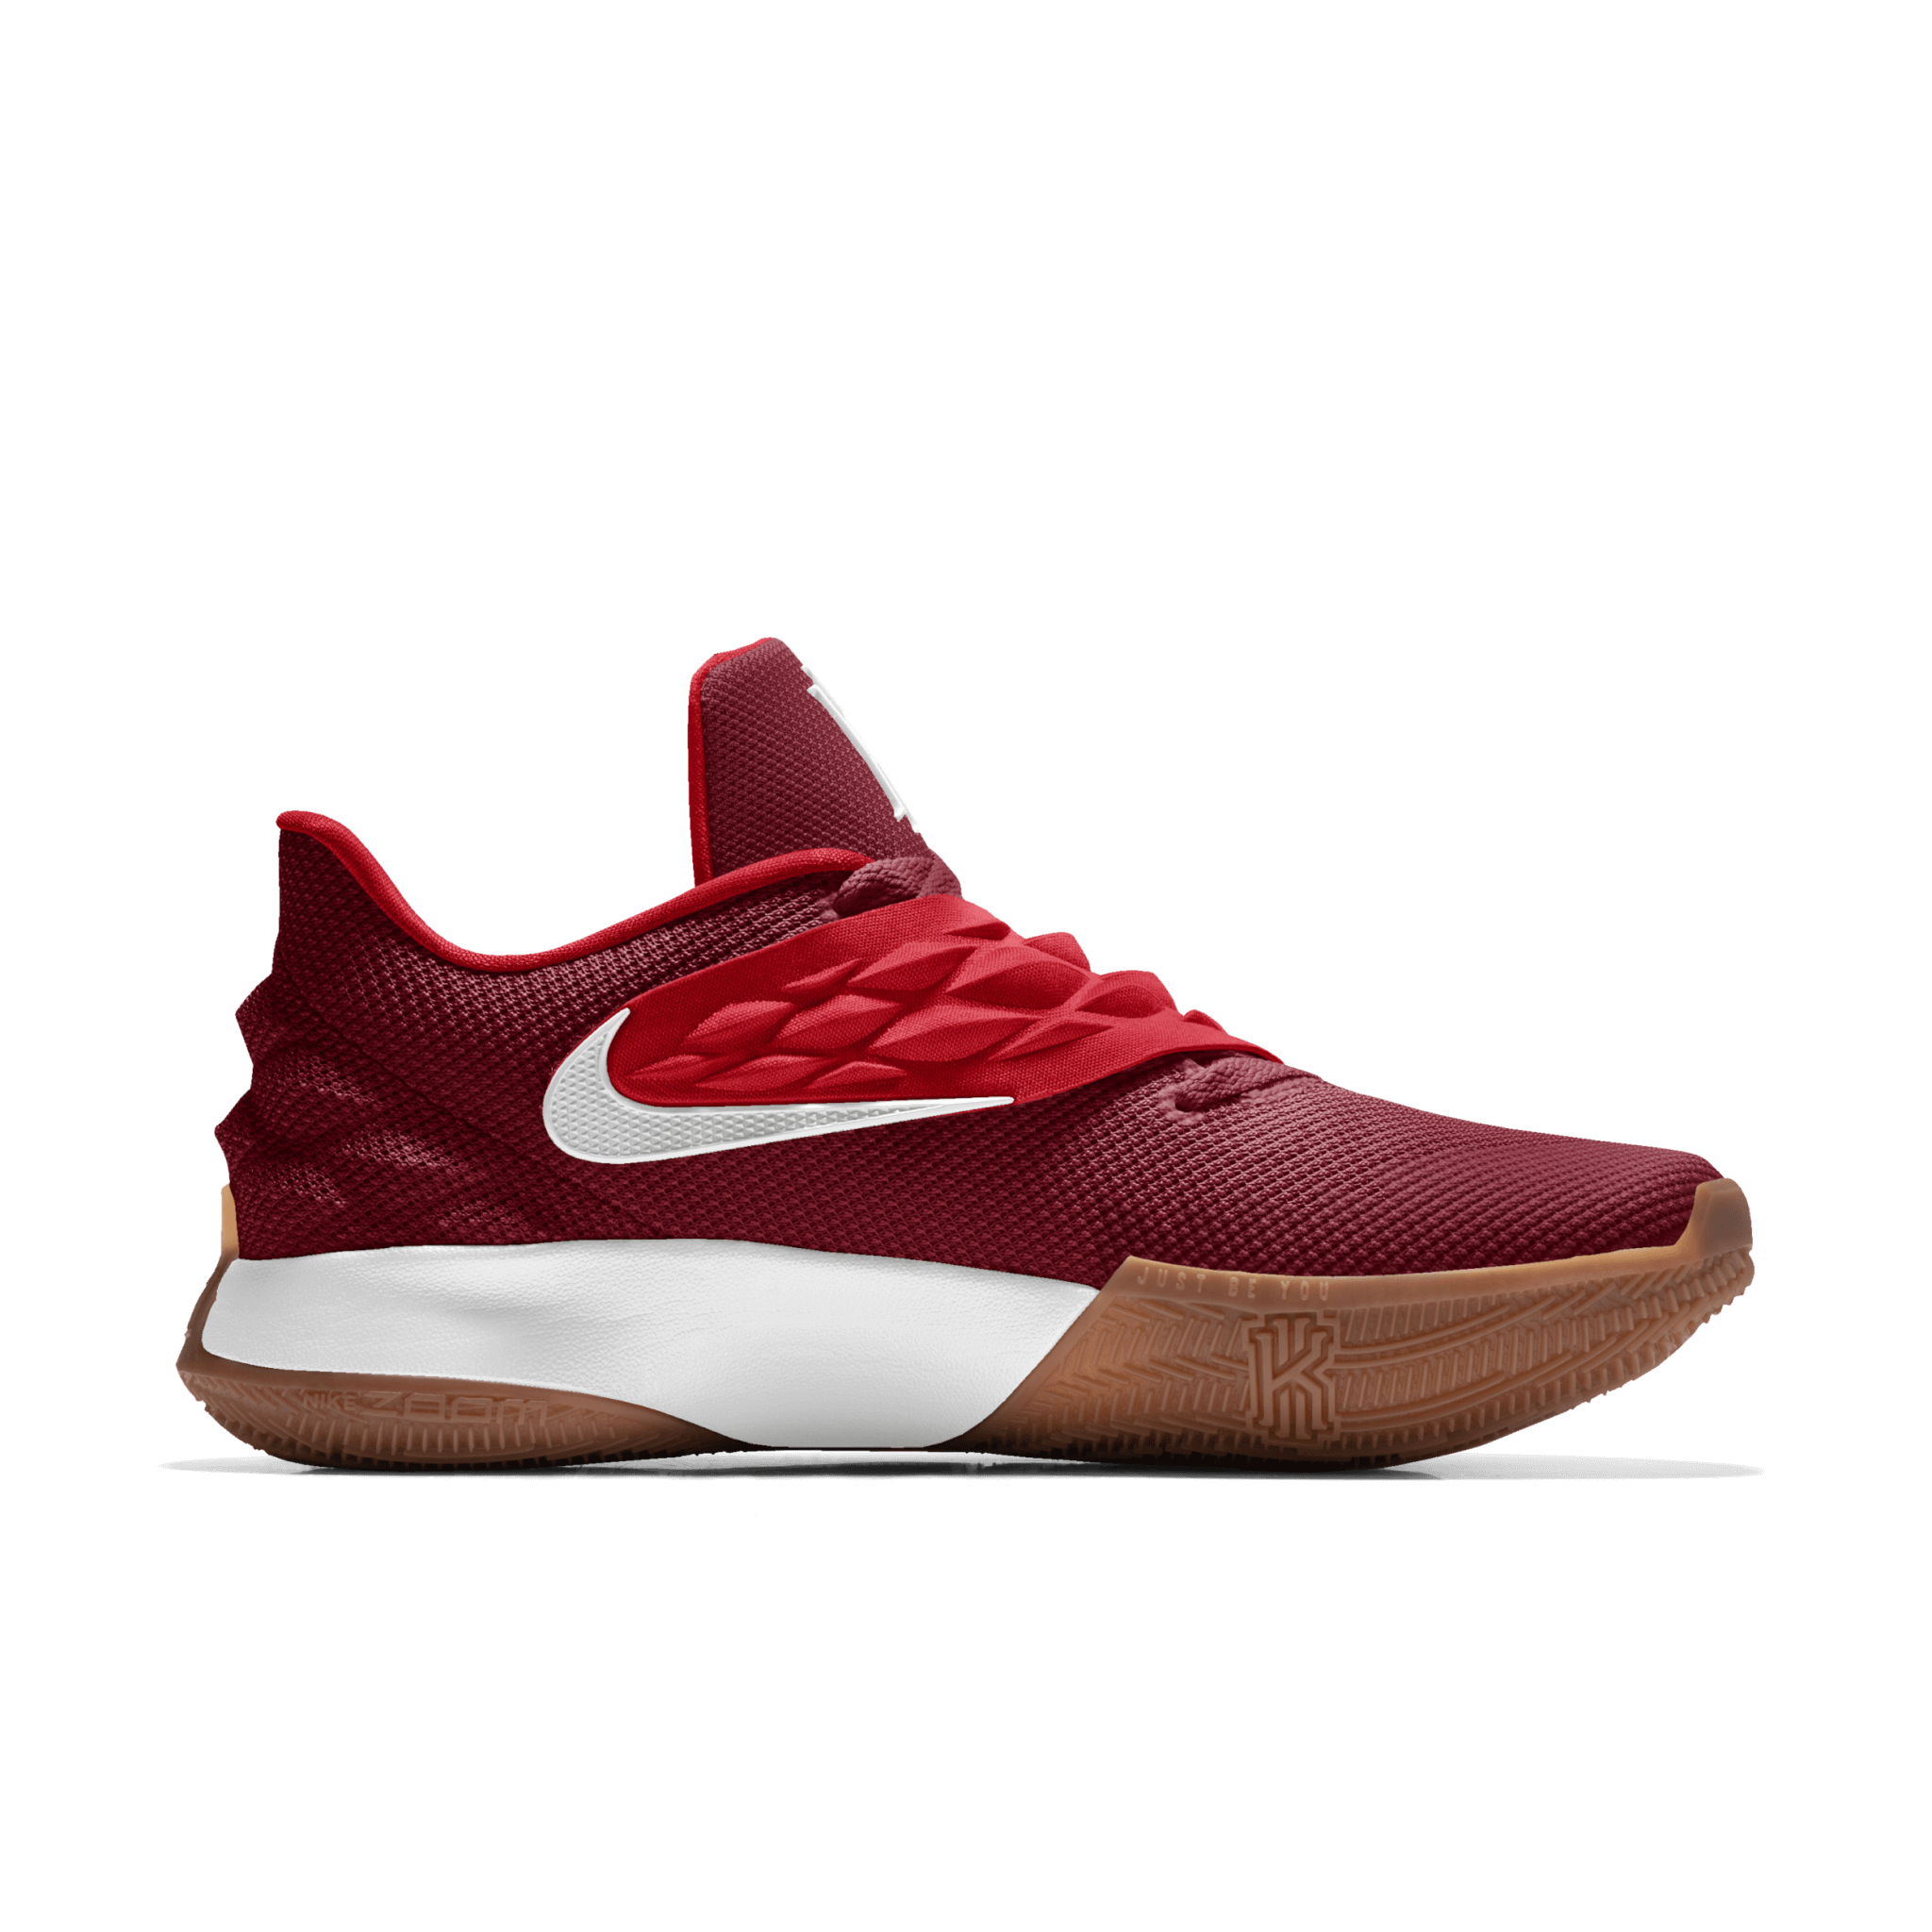 8dacc17be46a Nike Kyrie Low Performance Review